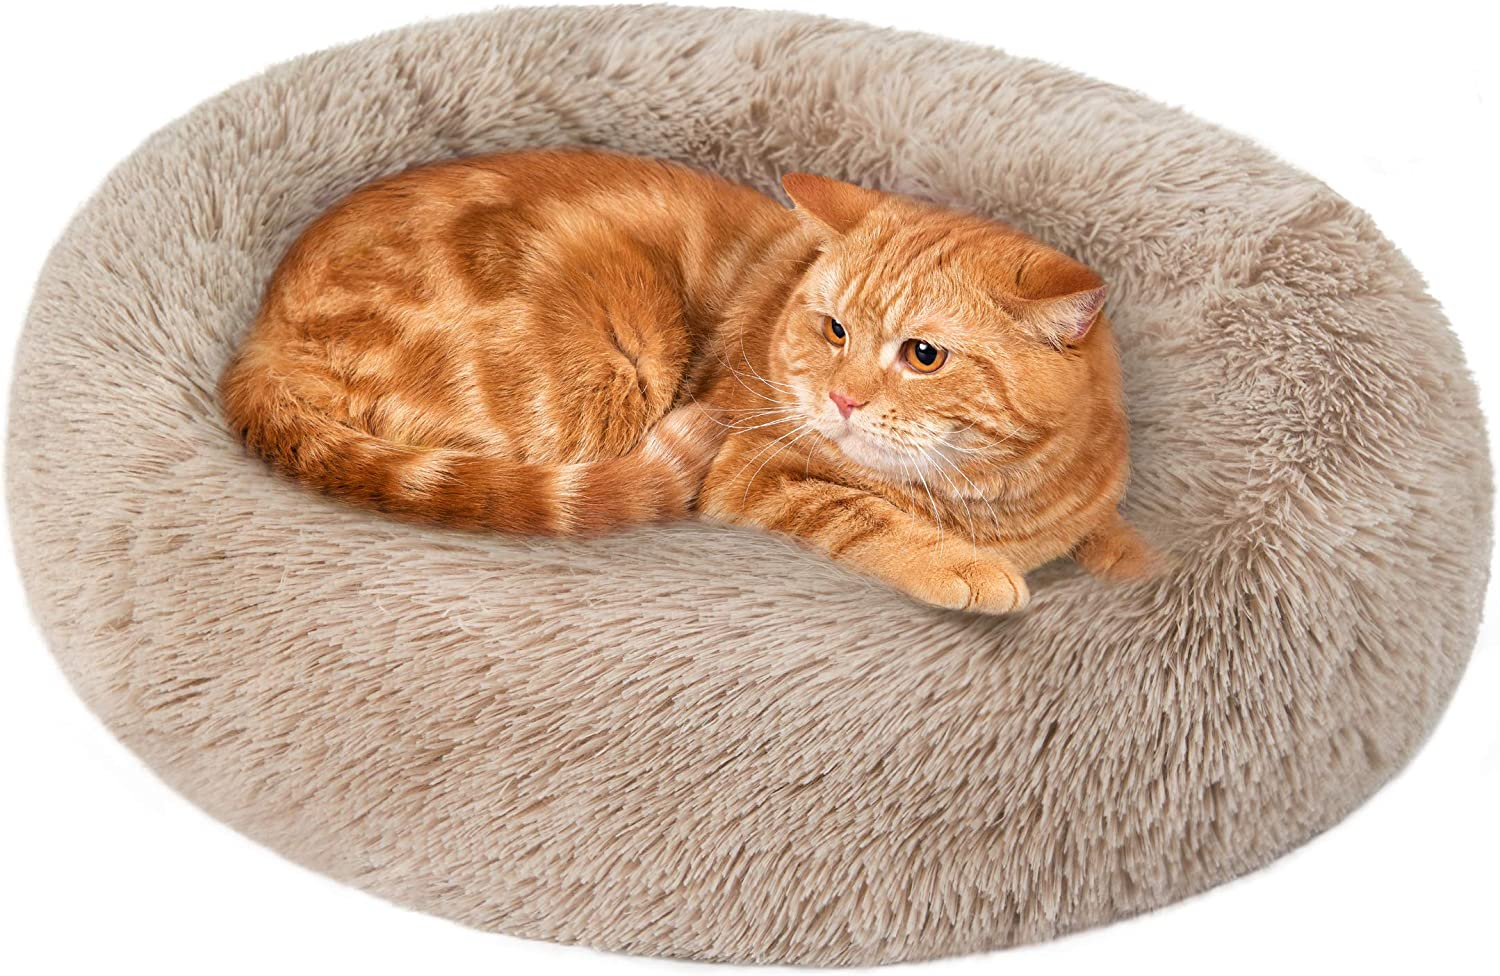 Love's cabin Cat Beds for Indoor Cats - Cat Bed with Machine Washable, Waterproof Bottom - Fluffy Dog and Cat Calming Cushion Bed for Joint-Relief and Sleep Improvement